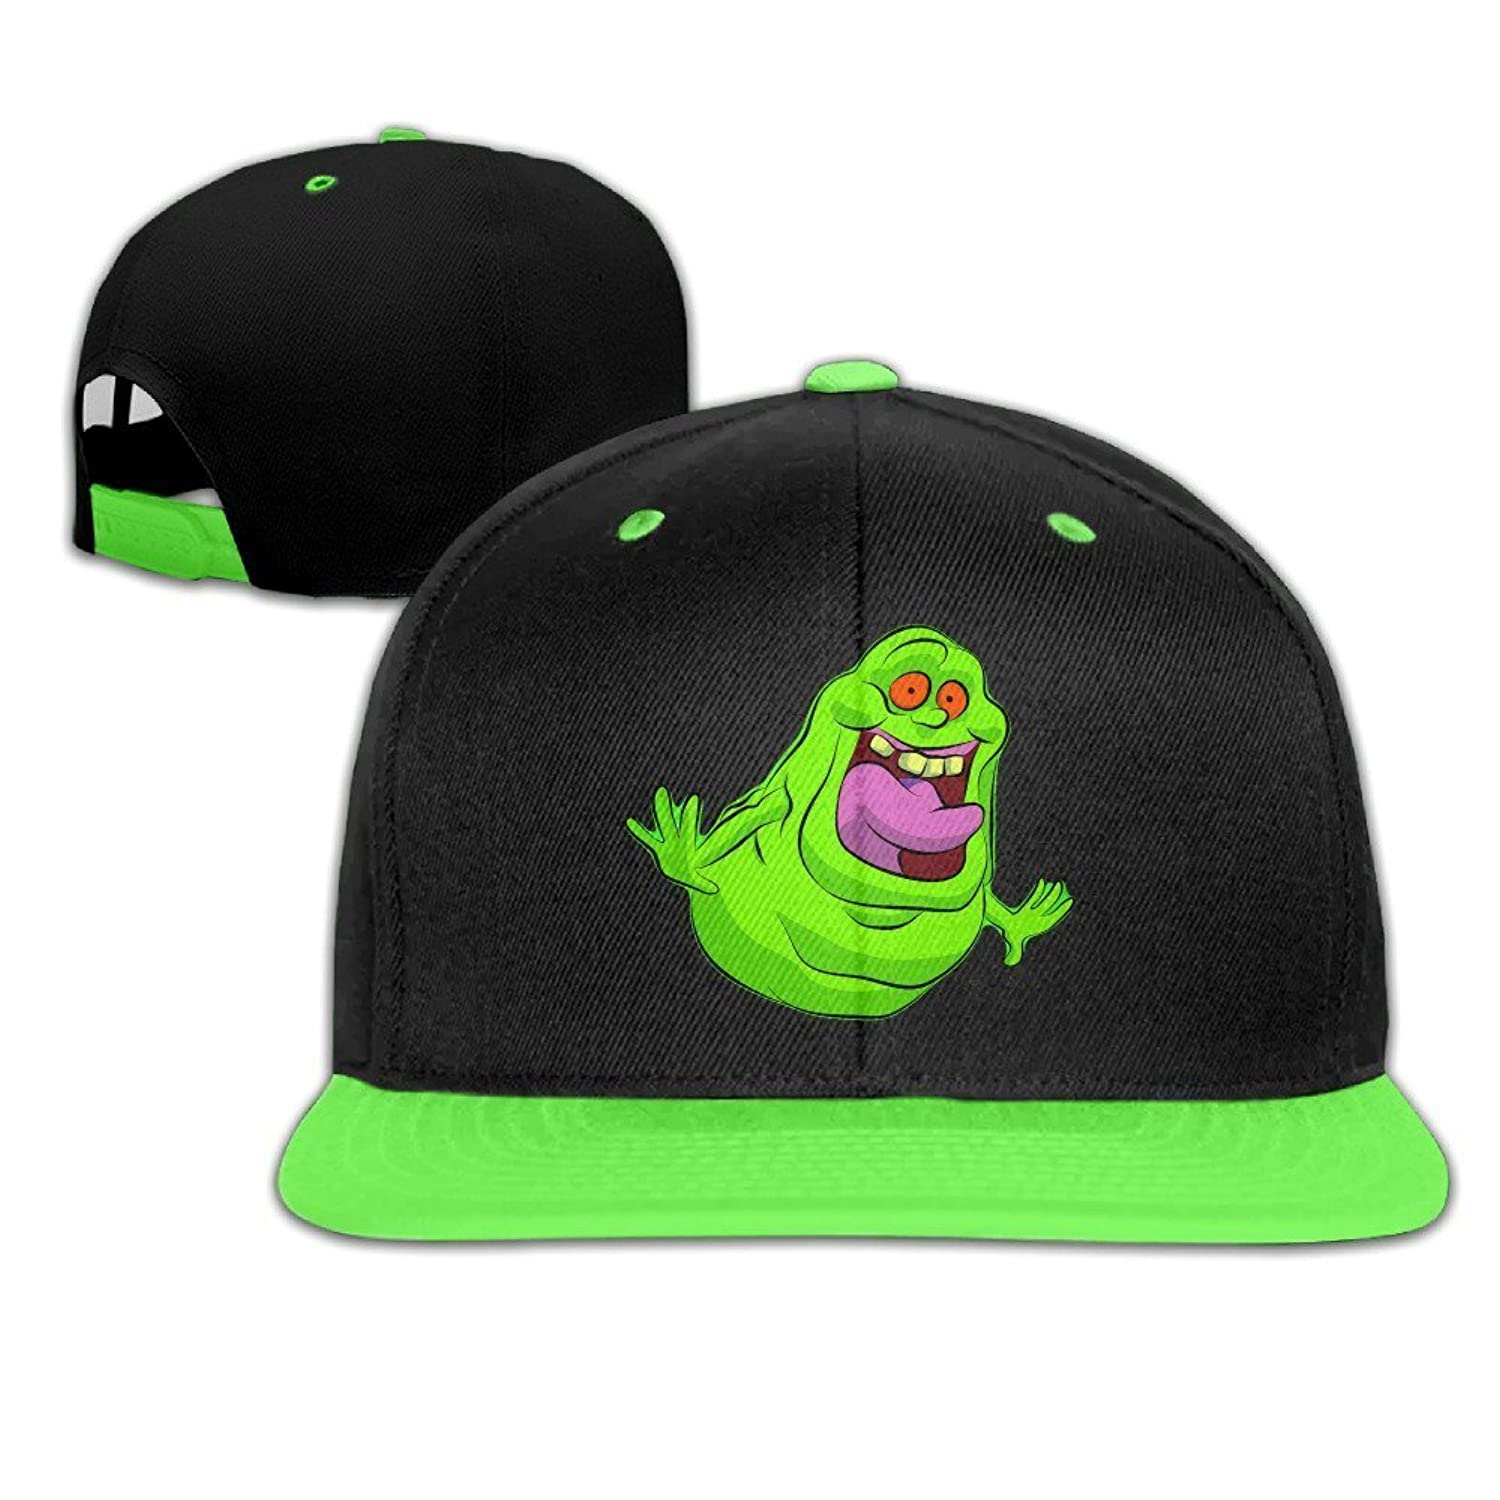 Ghostbusters Slimer Logo Custom Unisex Kids Hip-hop Cap Cotton Cool